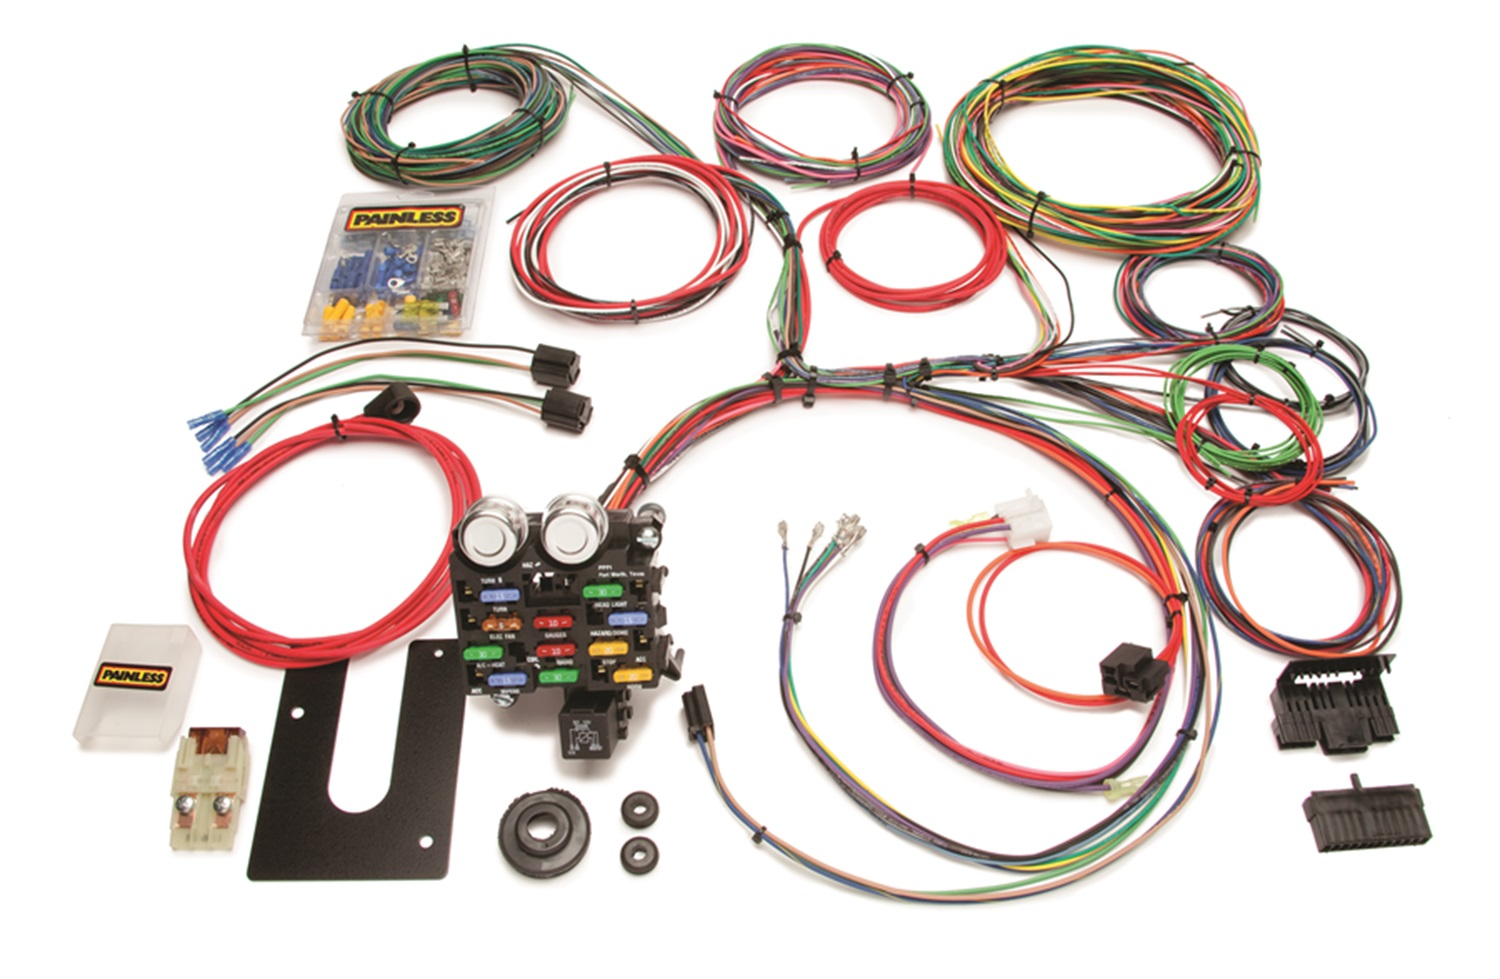 hight resolution of painless 10101 21 circuit classic customizable chassis harness gm keyed column